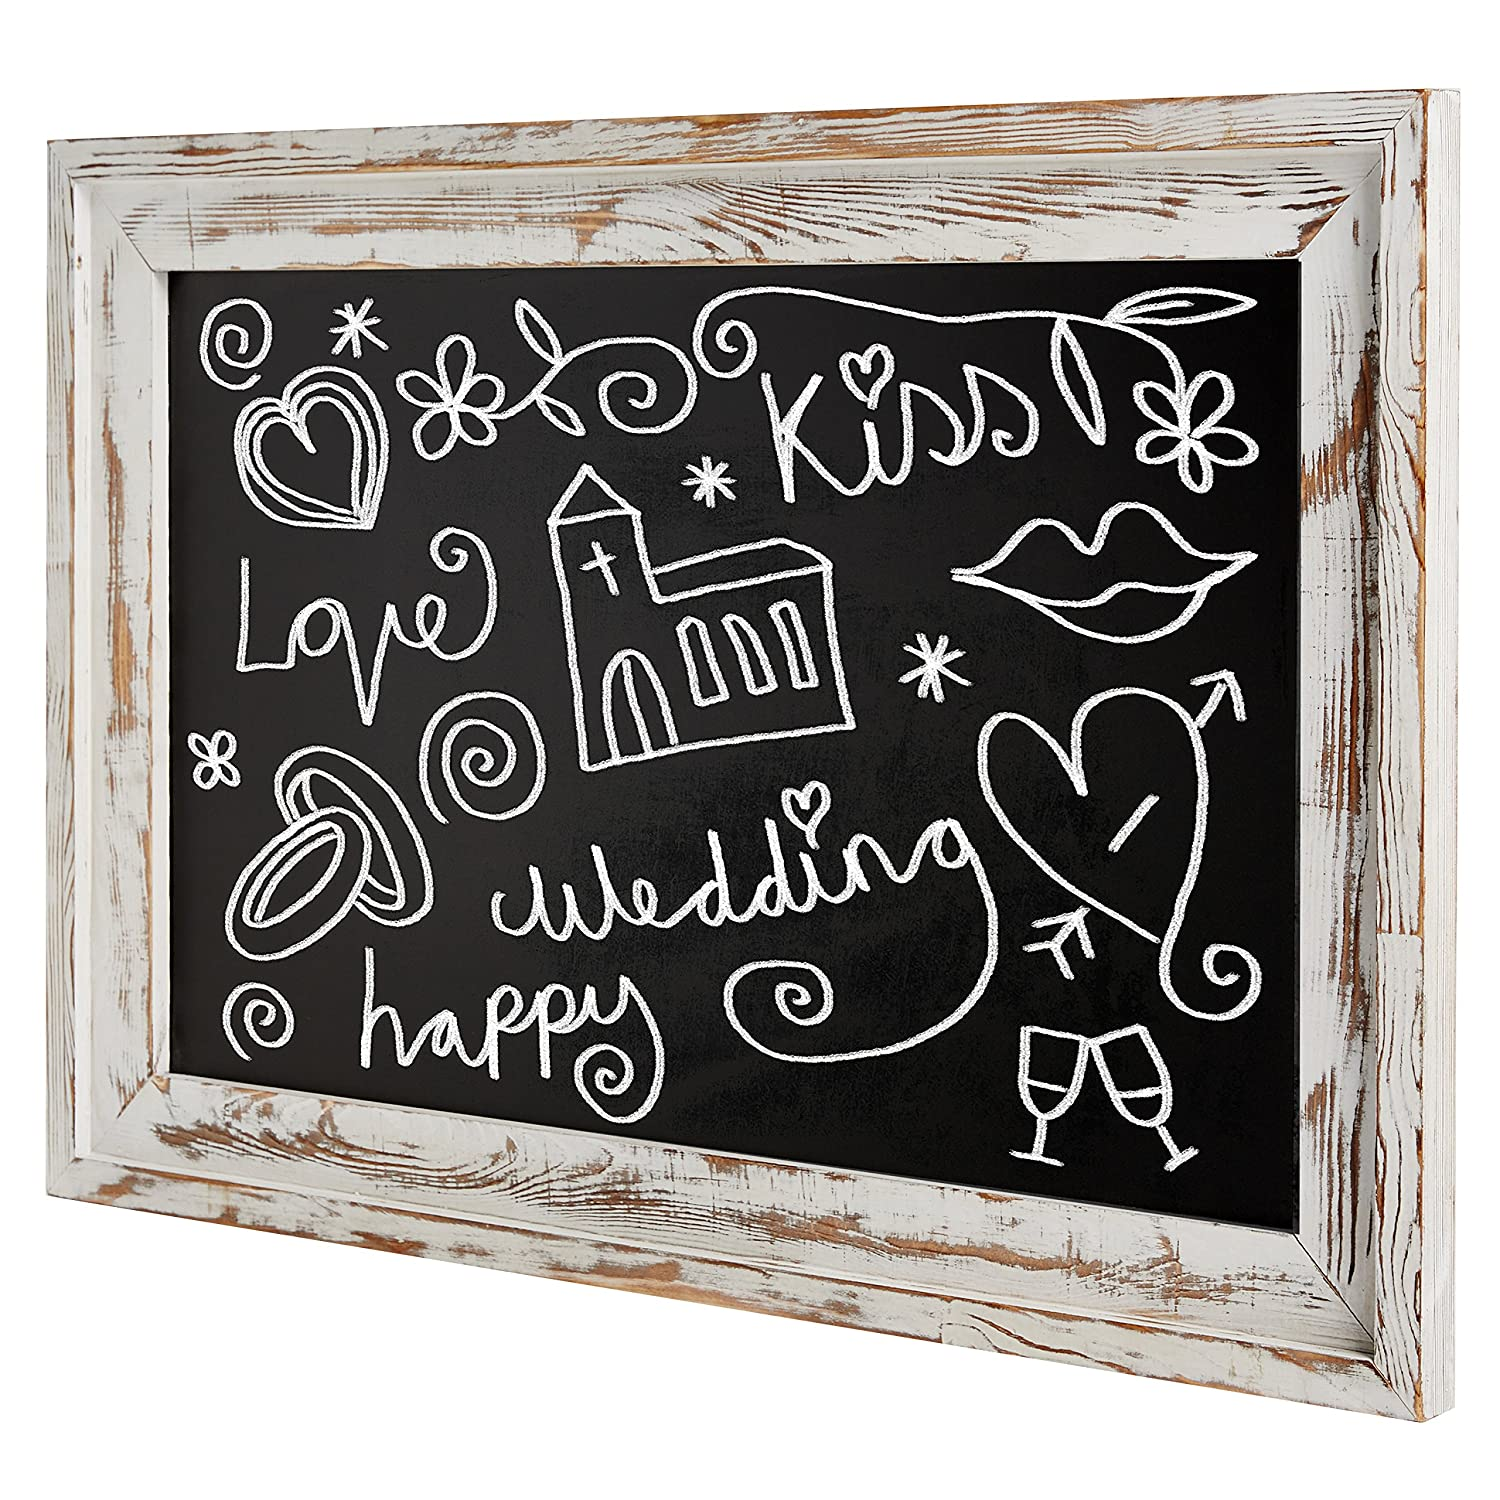 Shabby Chic Wall Mounted White Washed Wood Framed Chalkboard, White MyGift BHBUKPPAZINH1519